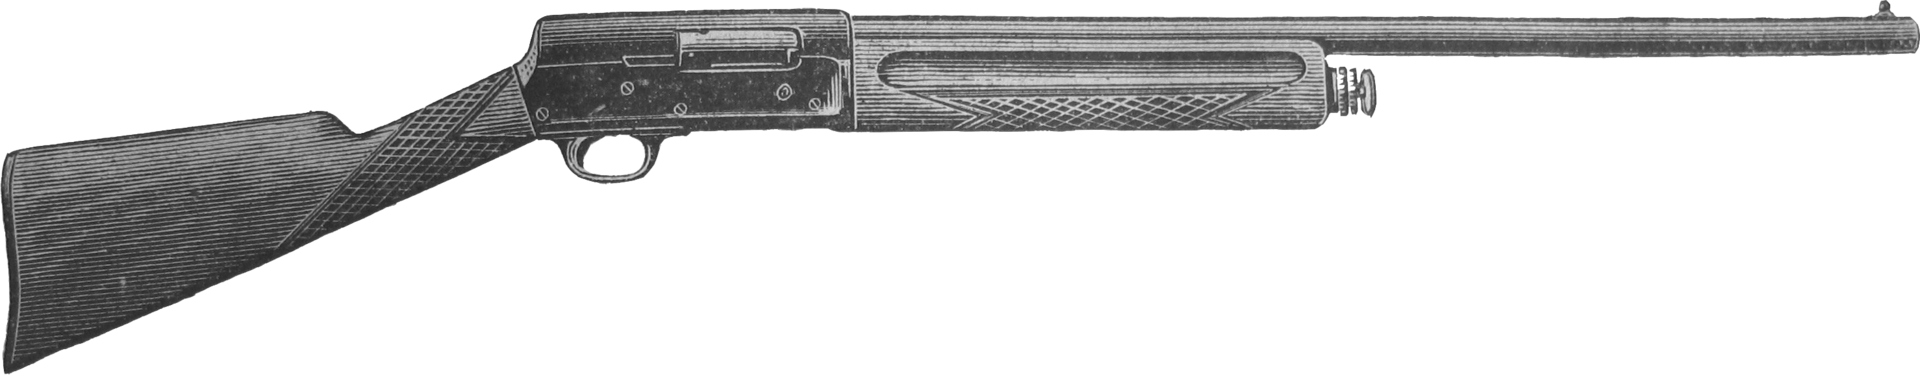 1920px-Browning_auto_5_catalog.png